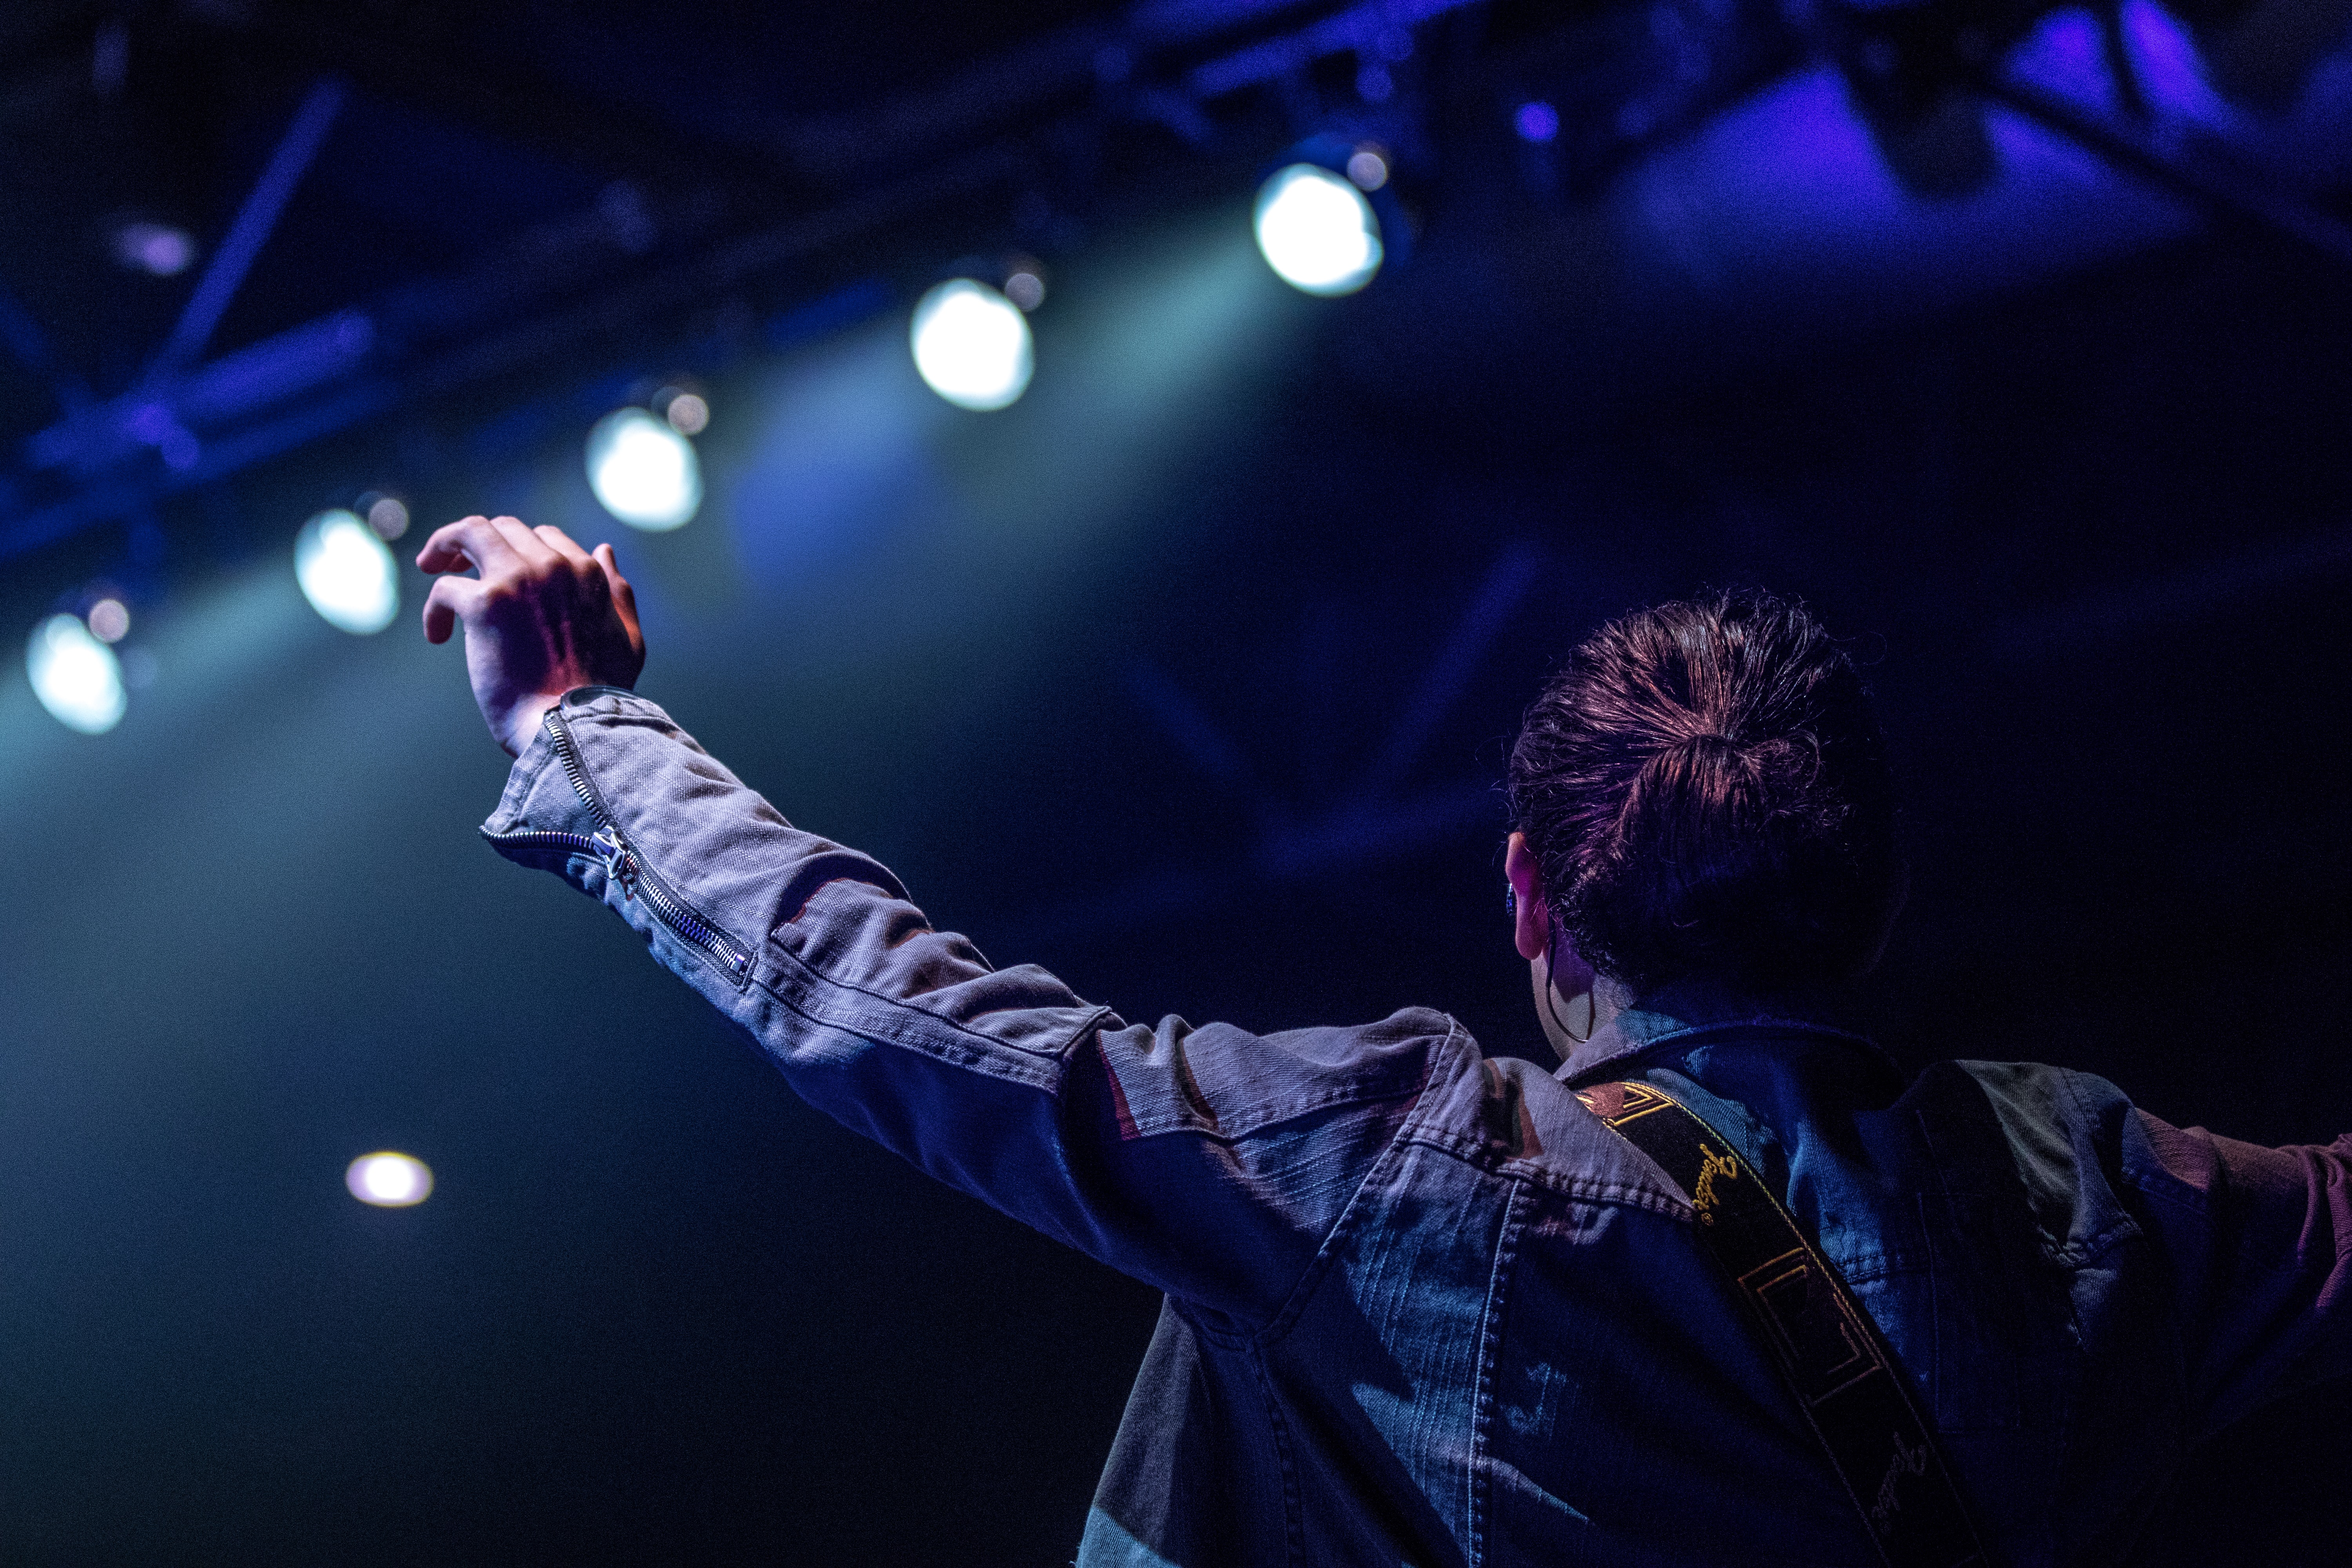 selective focus photography of person on stage with lights